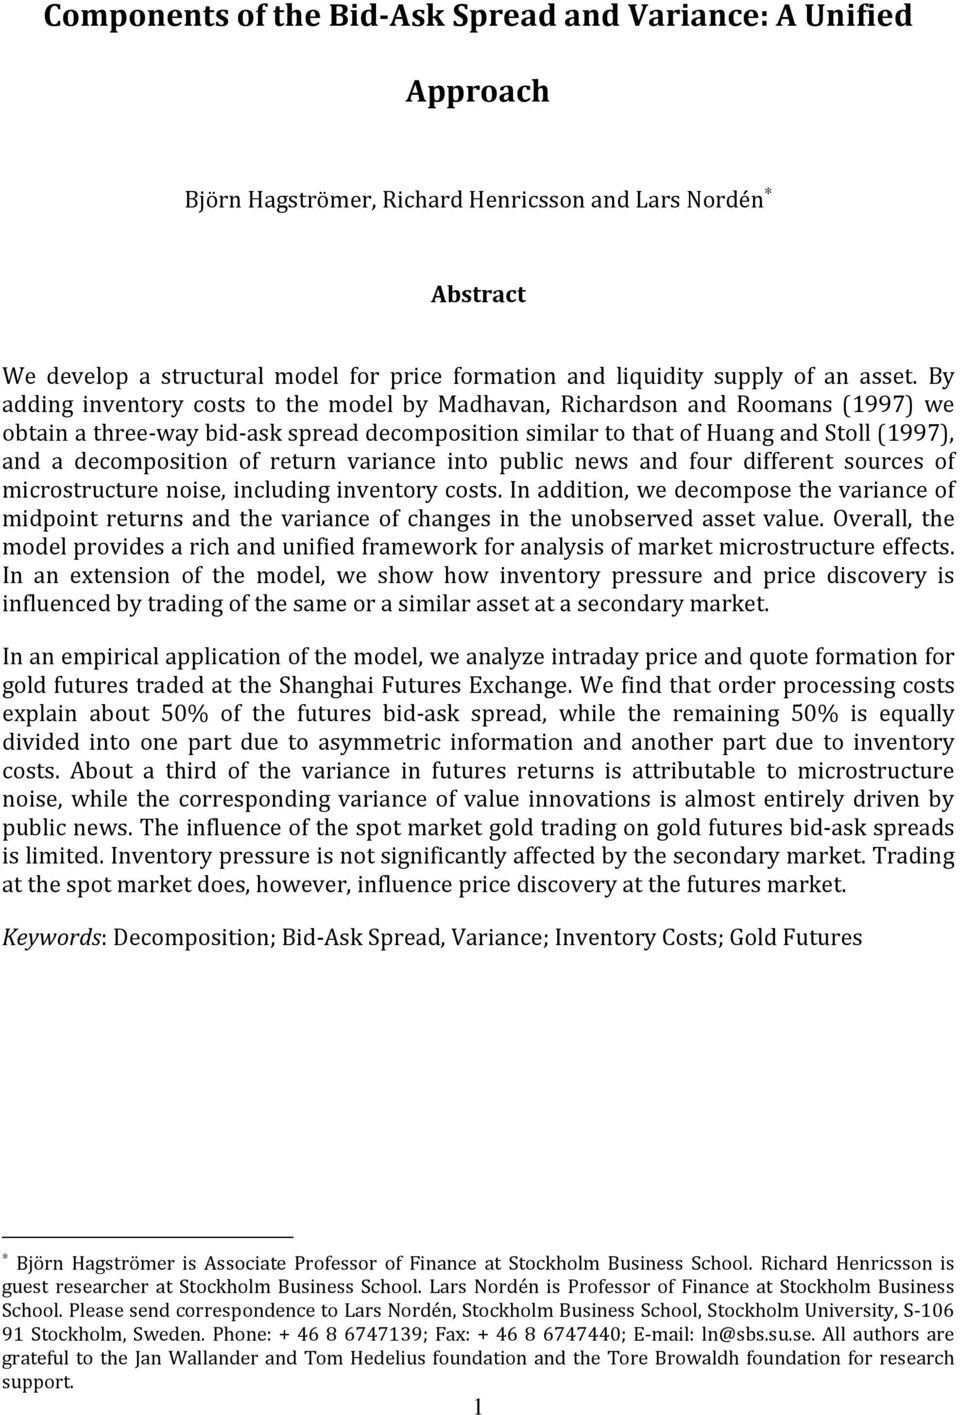 By adding inventory costs to the model by Madhavan, Richardson and Roomans (1997) we obtain a three-way bid-ask spread decomposition similar to that of Huang and Stoll (1997), and a decomposition of